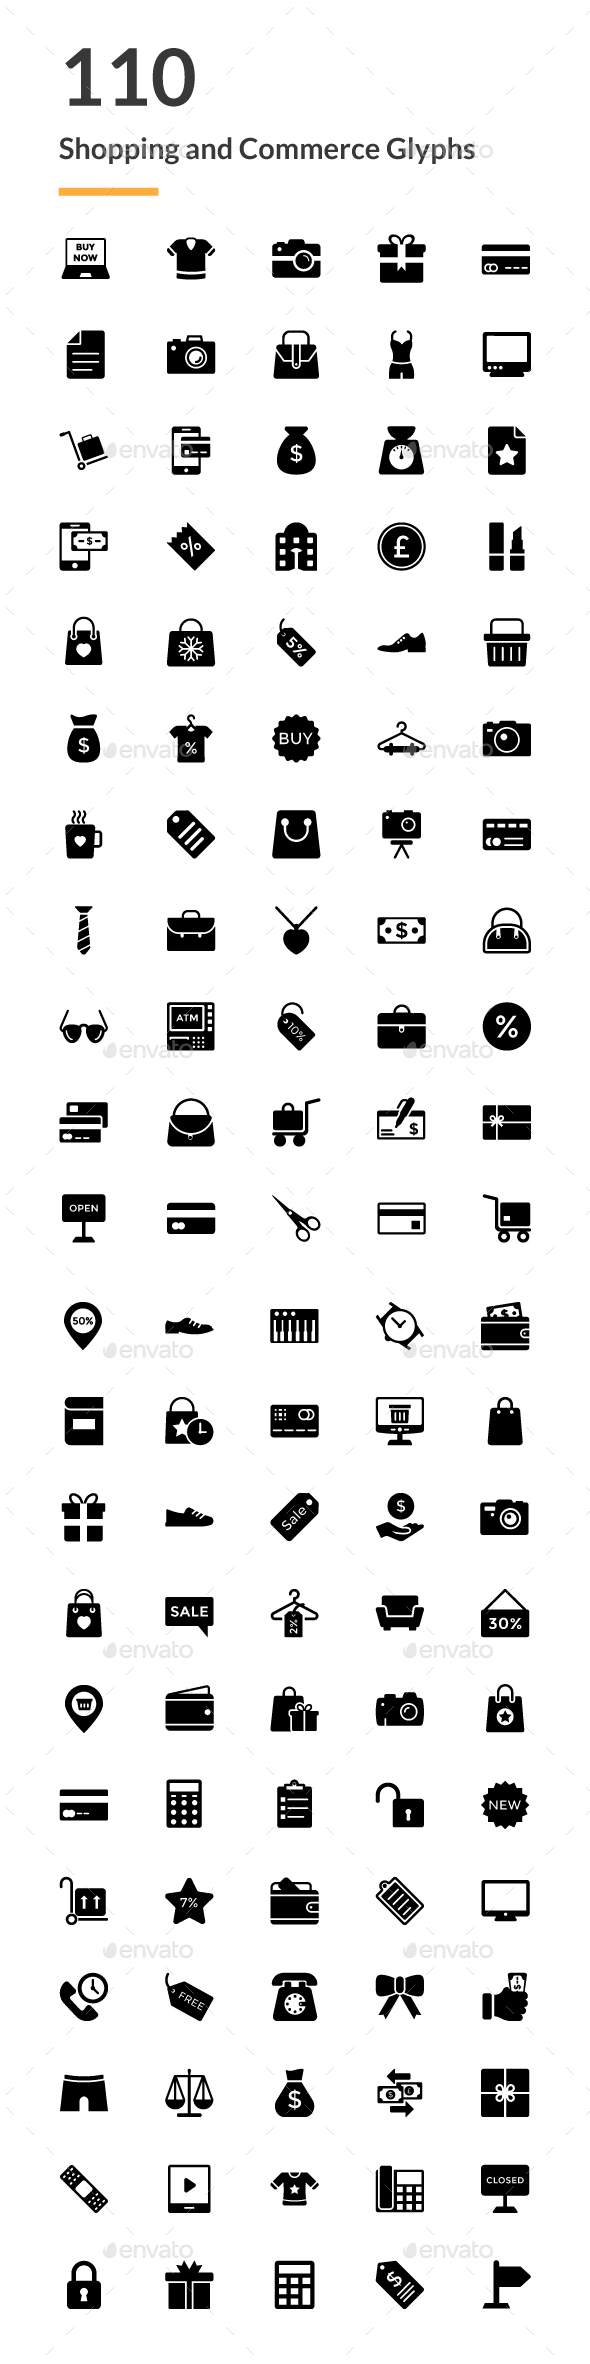 GraphicRiver 110 Shopping and Commerce Glyph Icon 20752316